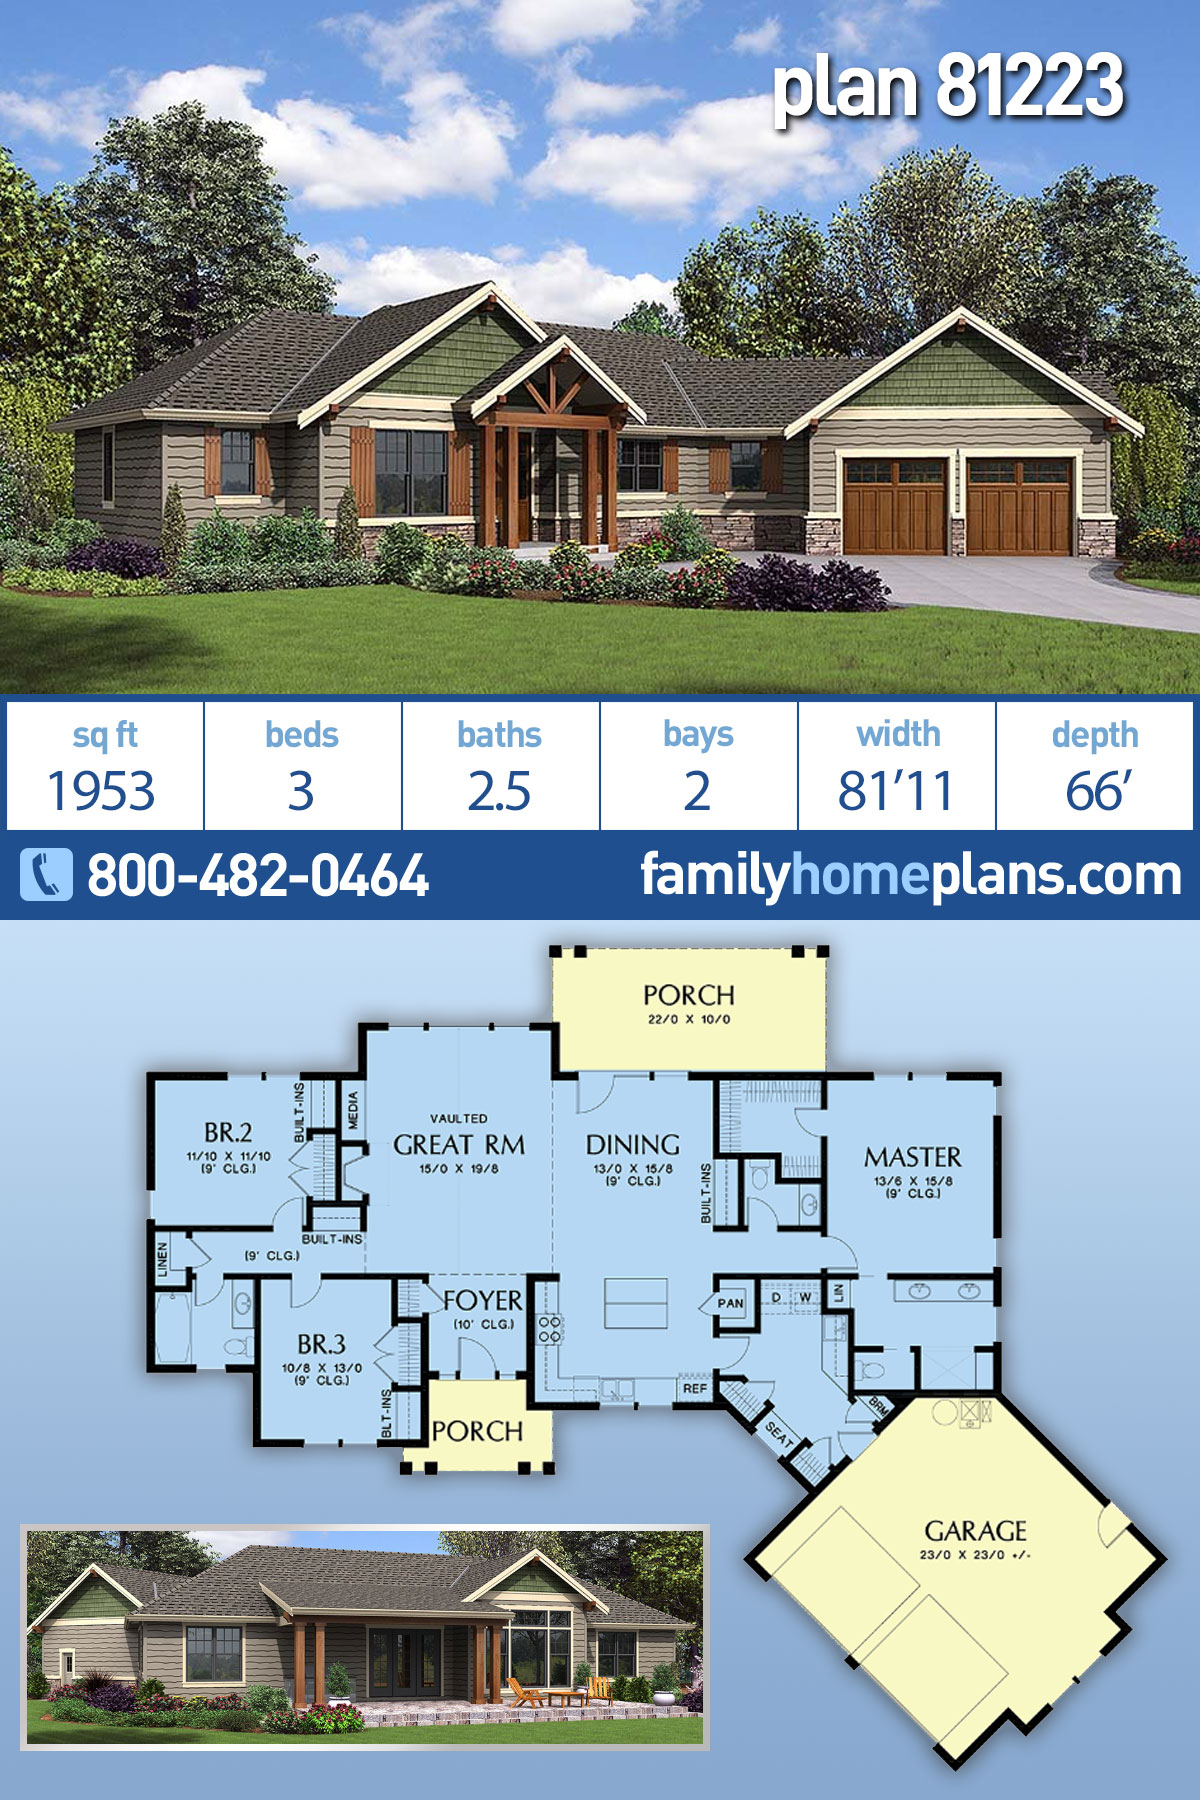 Craftsman, Ranch House Plan 81223 with 3 Beds, 3 Baths, 2 Car Garage